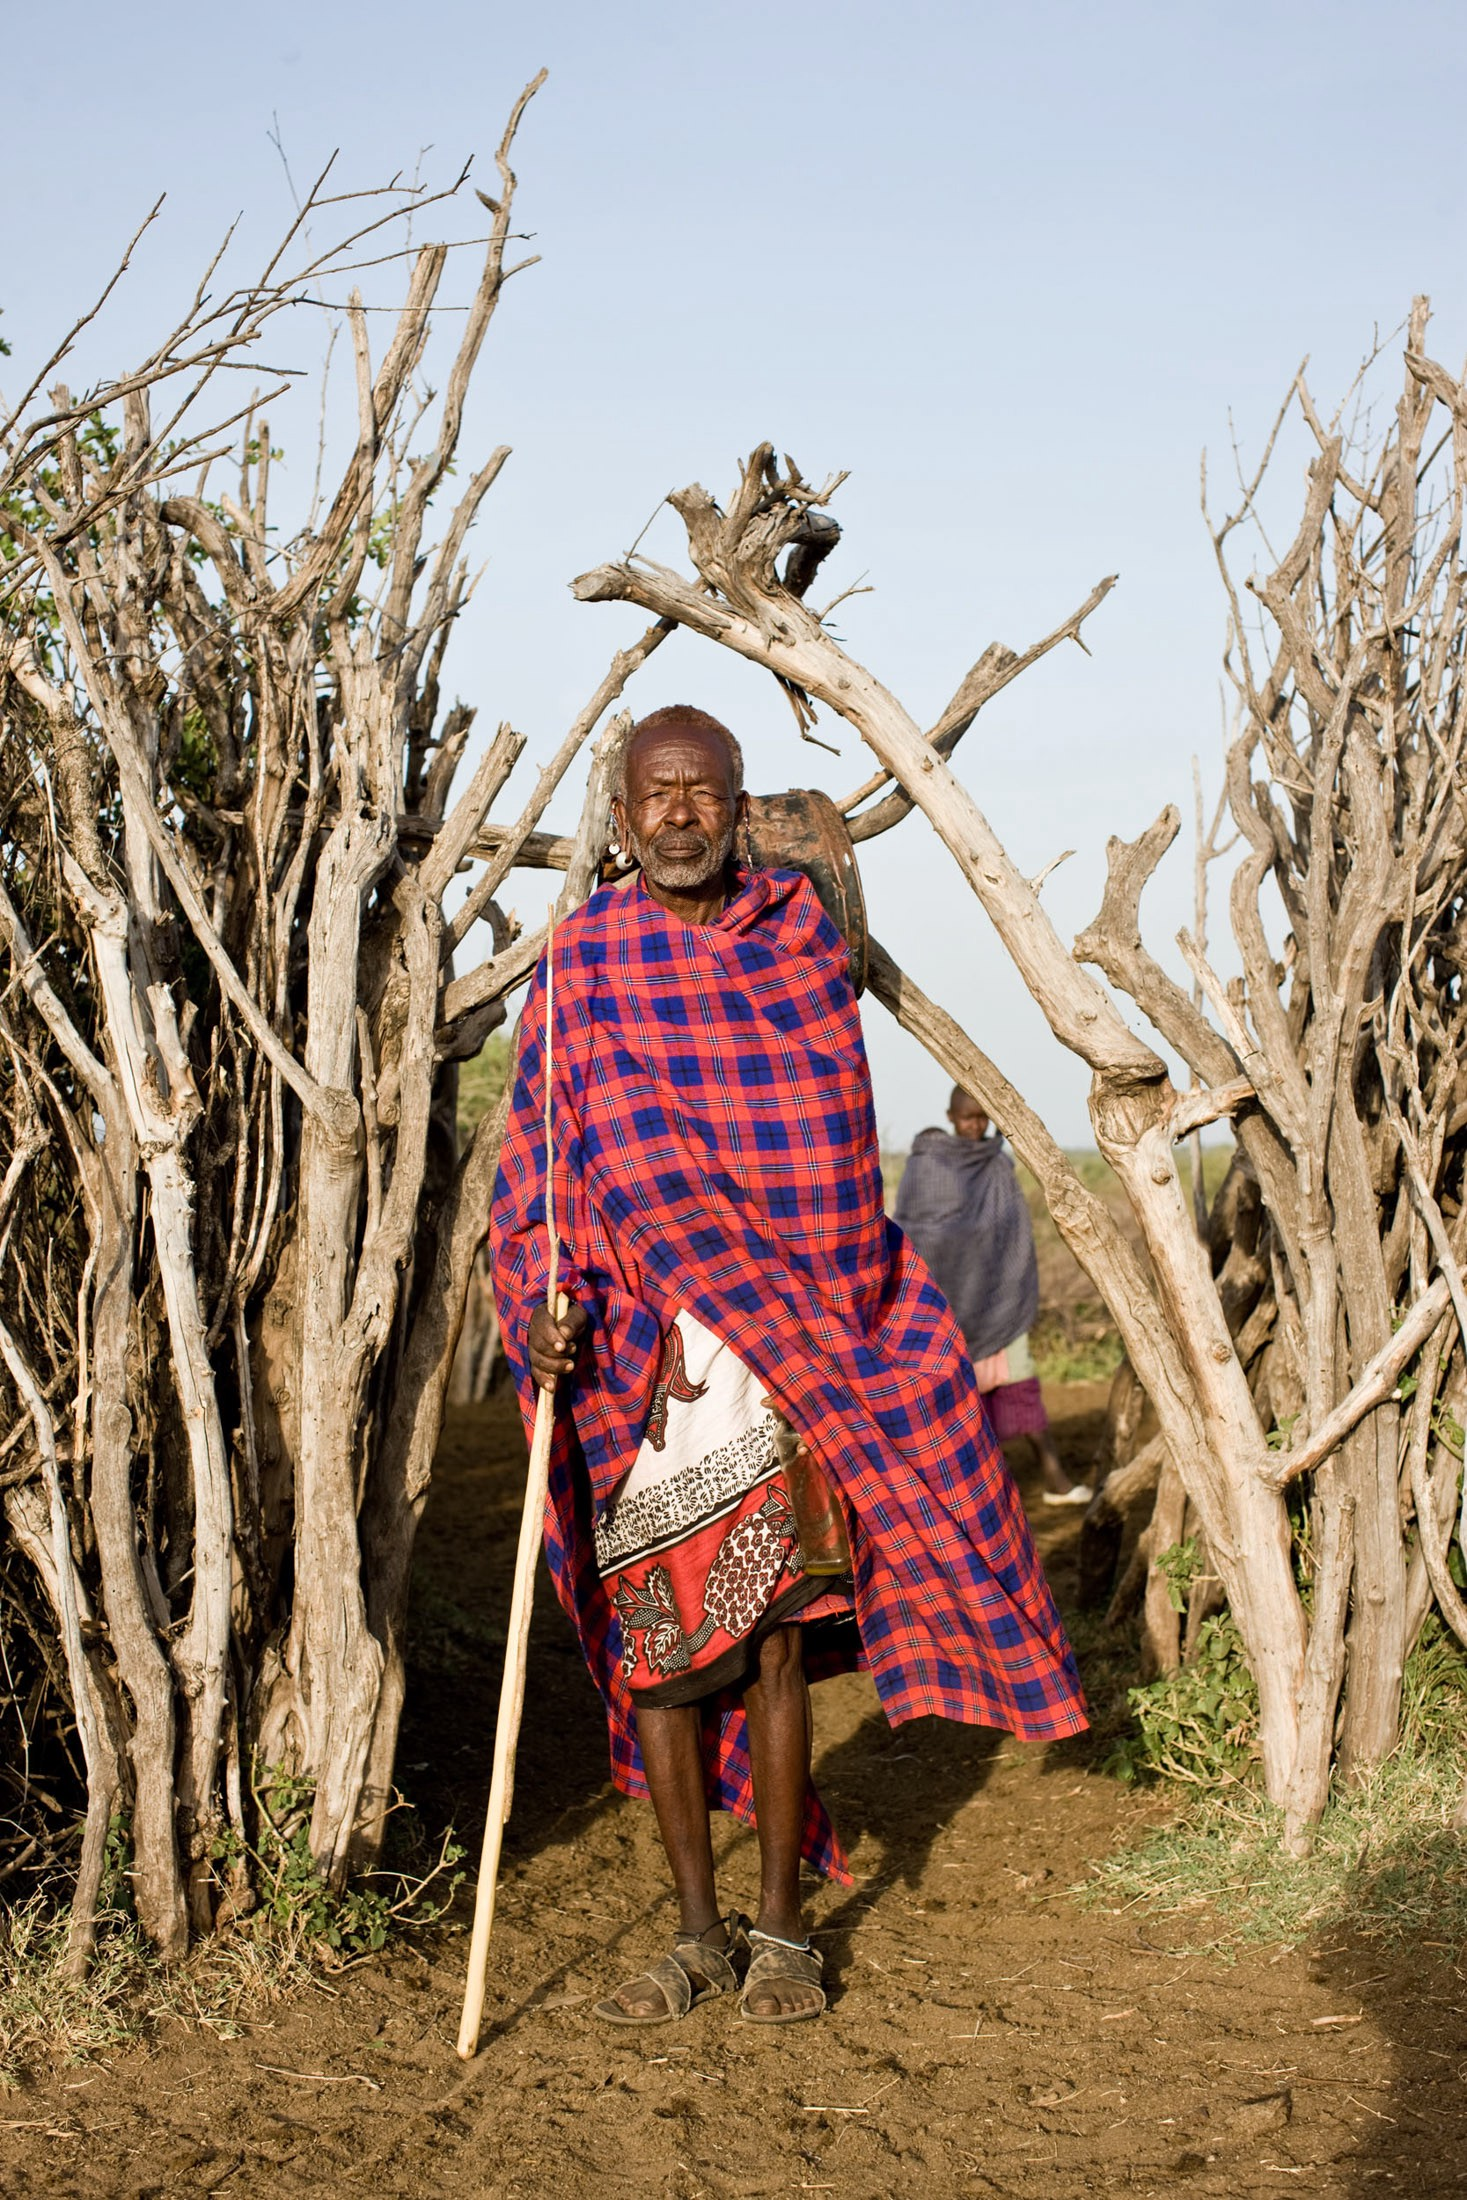 A Maasai elder wears a tartan wool shuka to ward off the early morning chill.